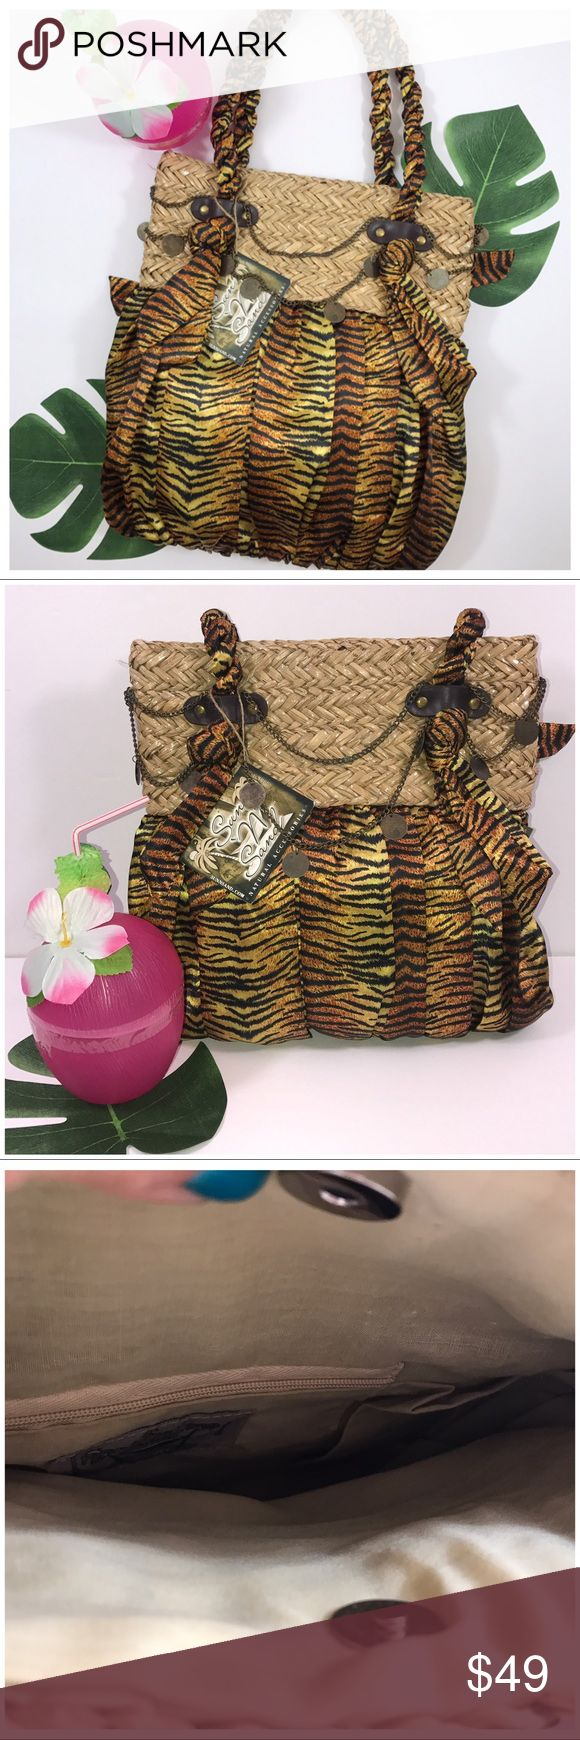 Sun & Sand Vacation dreamer Beaches and parties are calling ladies, make sure you are arm candy summer rocking!. This beauty will fly, I'm SO close to keeping it (arg) posh battle (smirk). Tassels, wicker and sultry print! Yes yes and OH yes. Sun n Sand Bags Totes